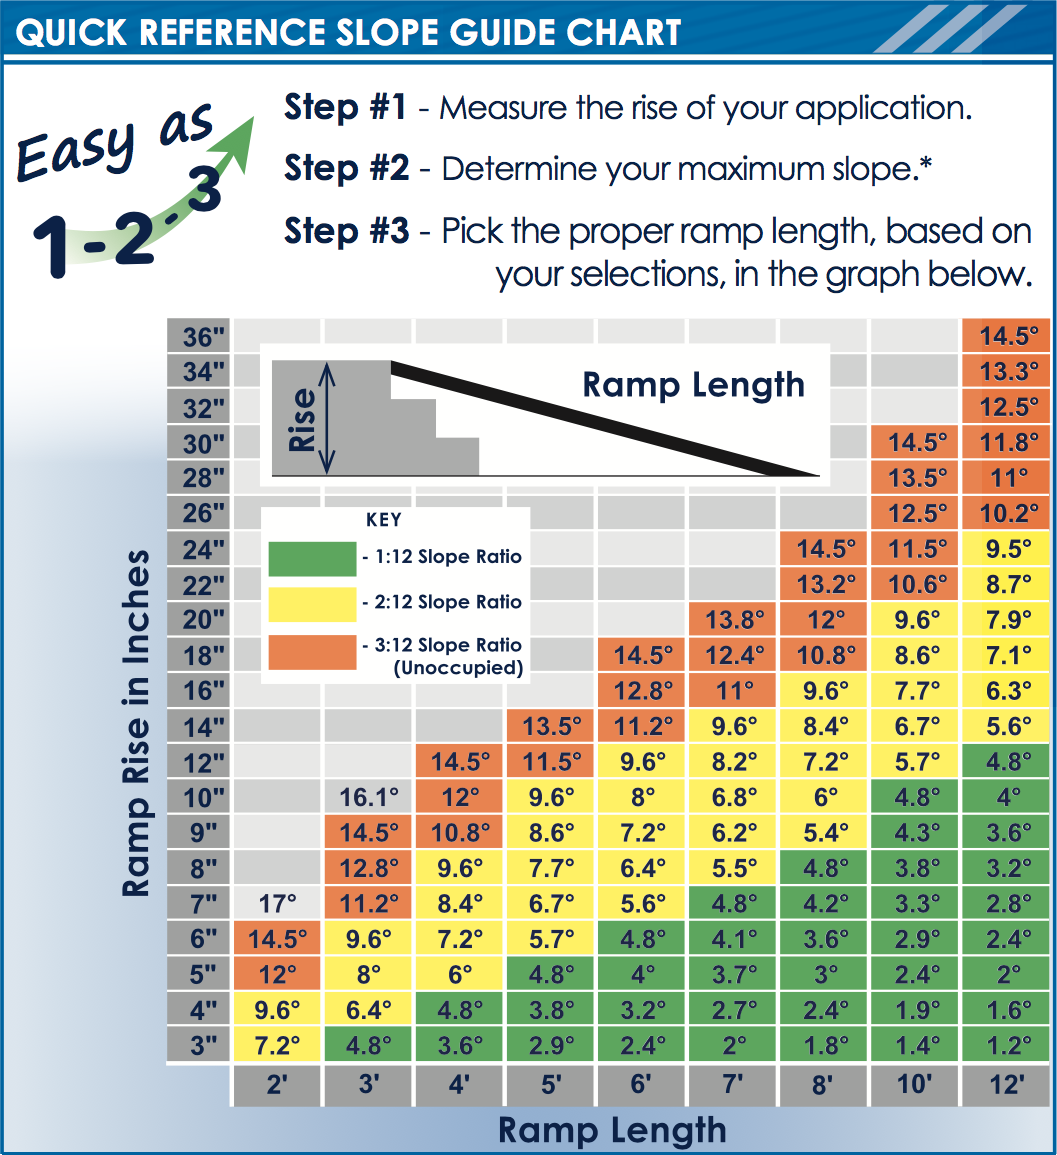 Quick reference ramp slope guide chart